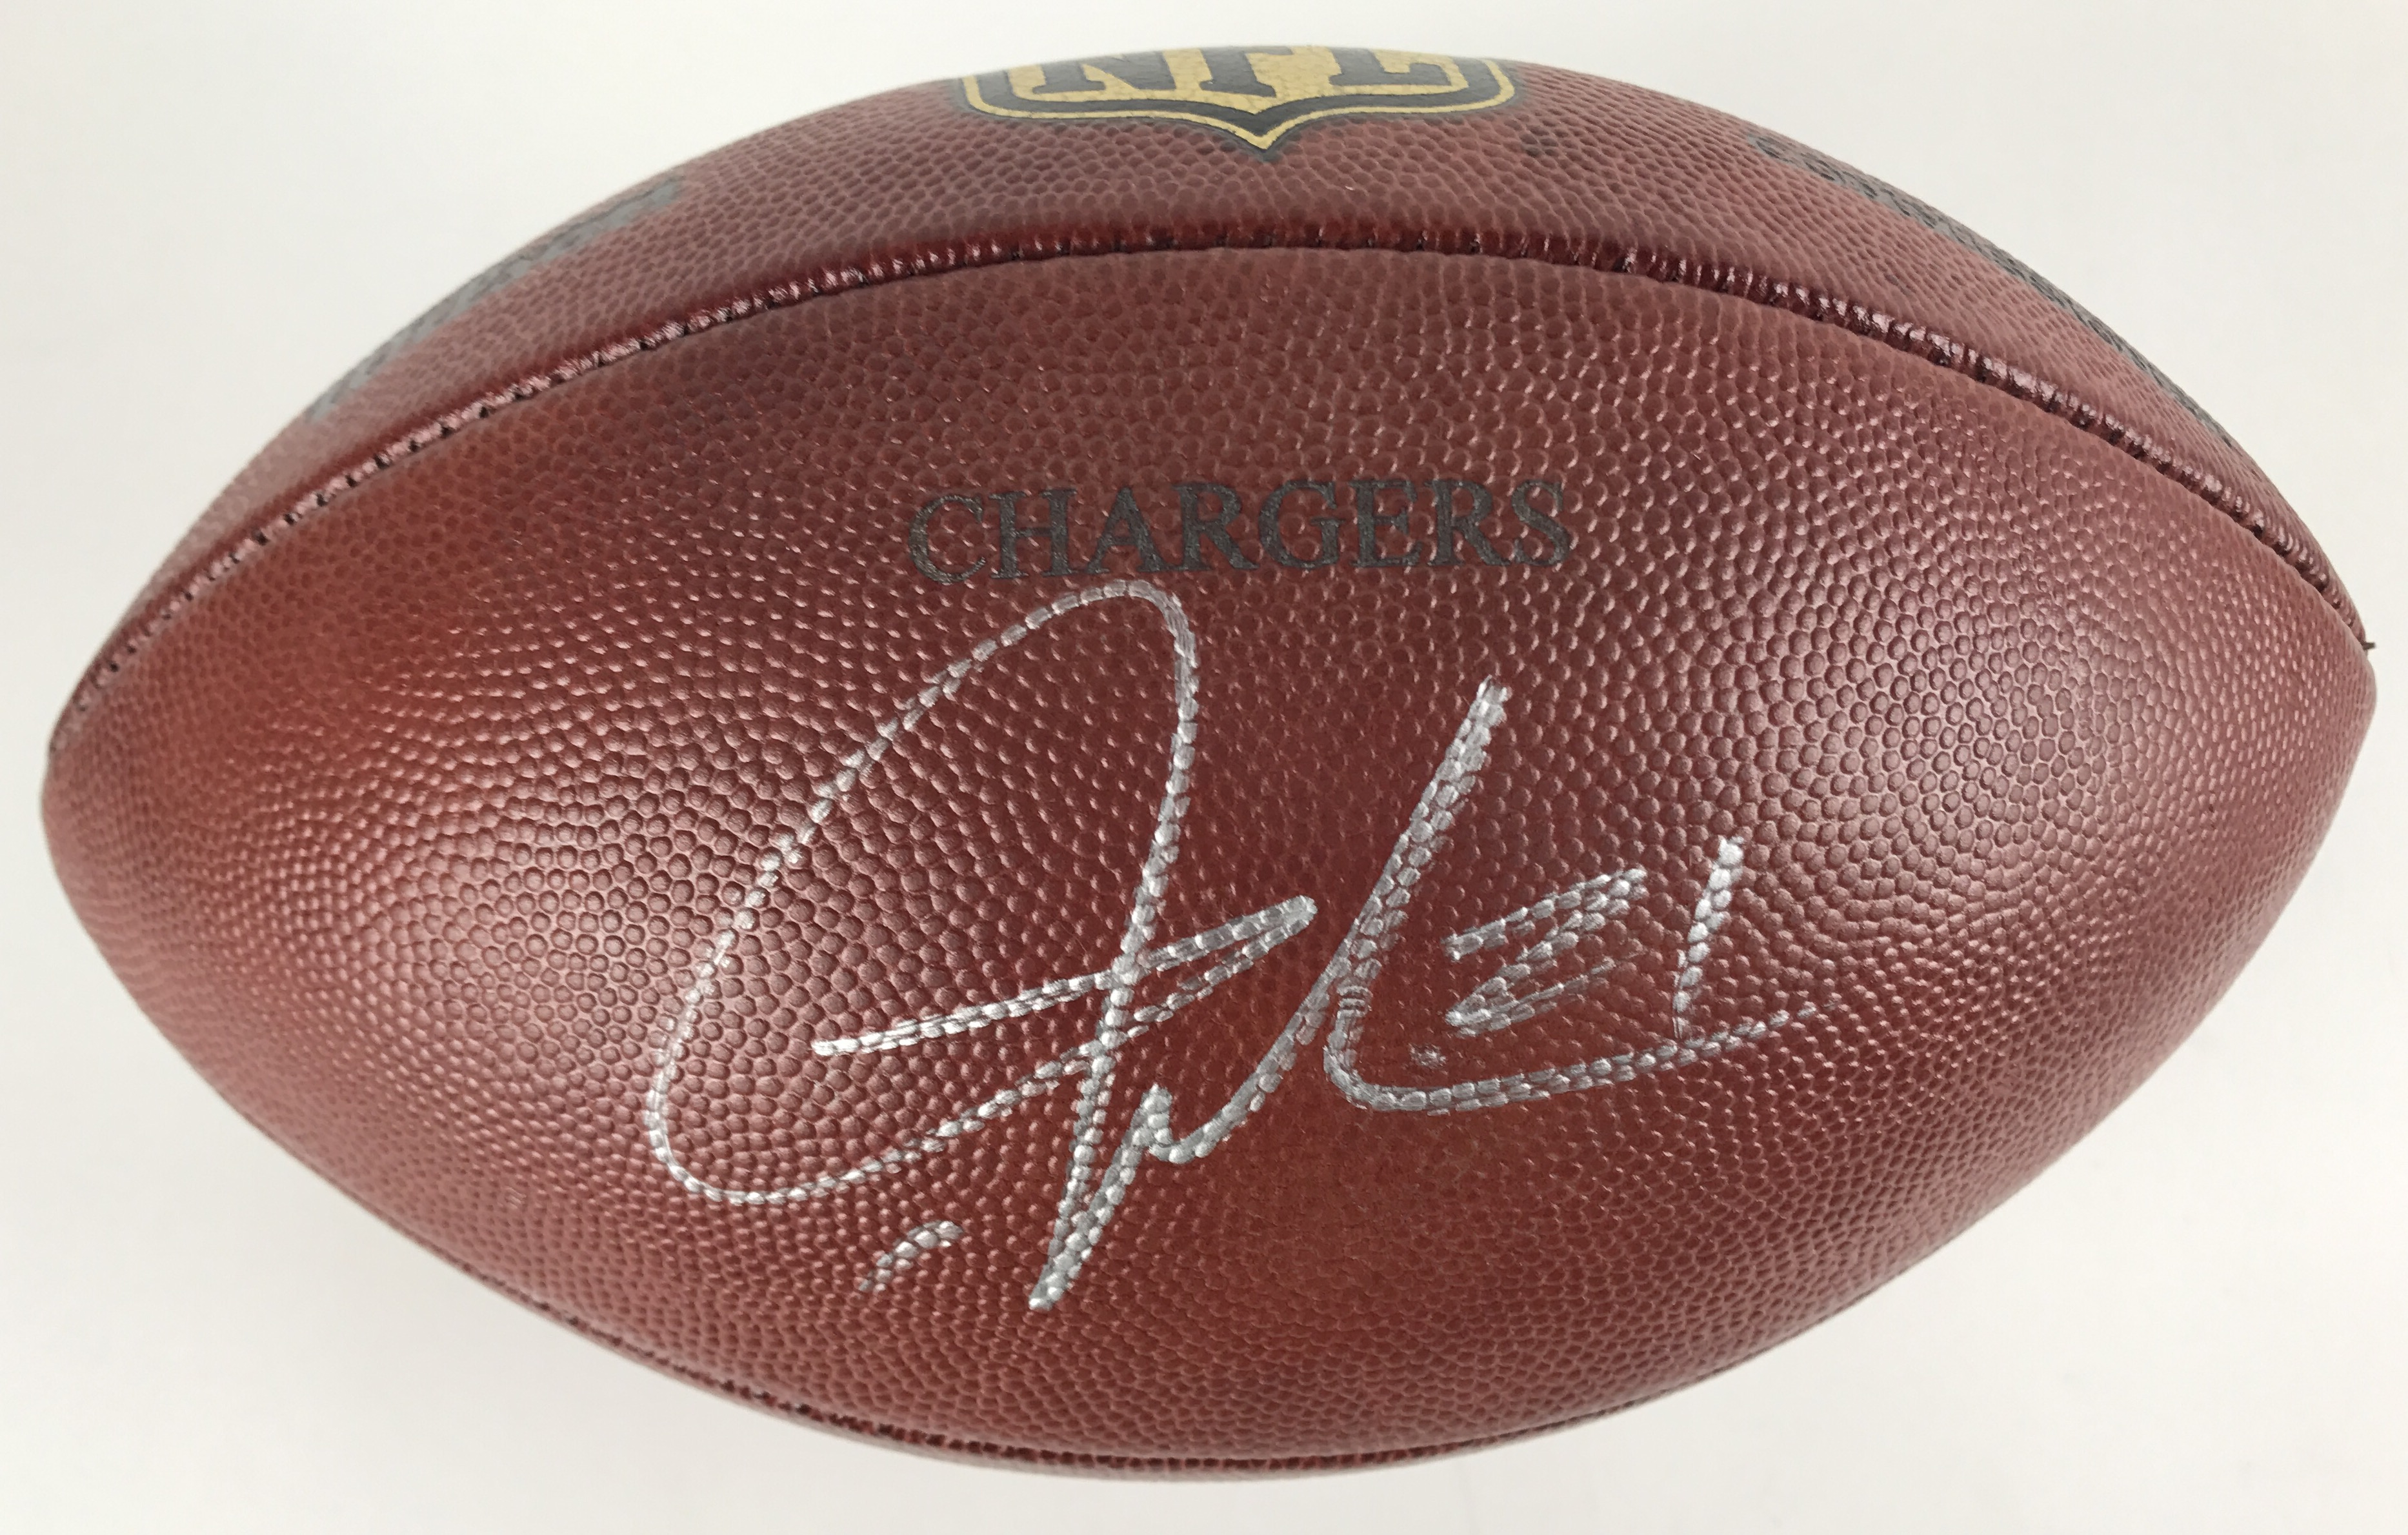 meet 335c4 9debd Lot Detail - LaDainian Tomlinson Signed Game Used Chargers ...